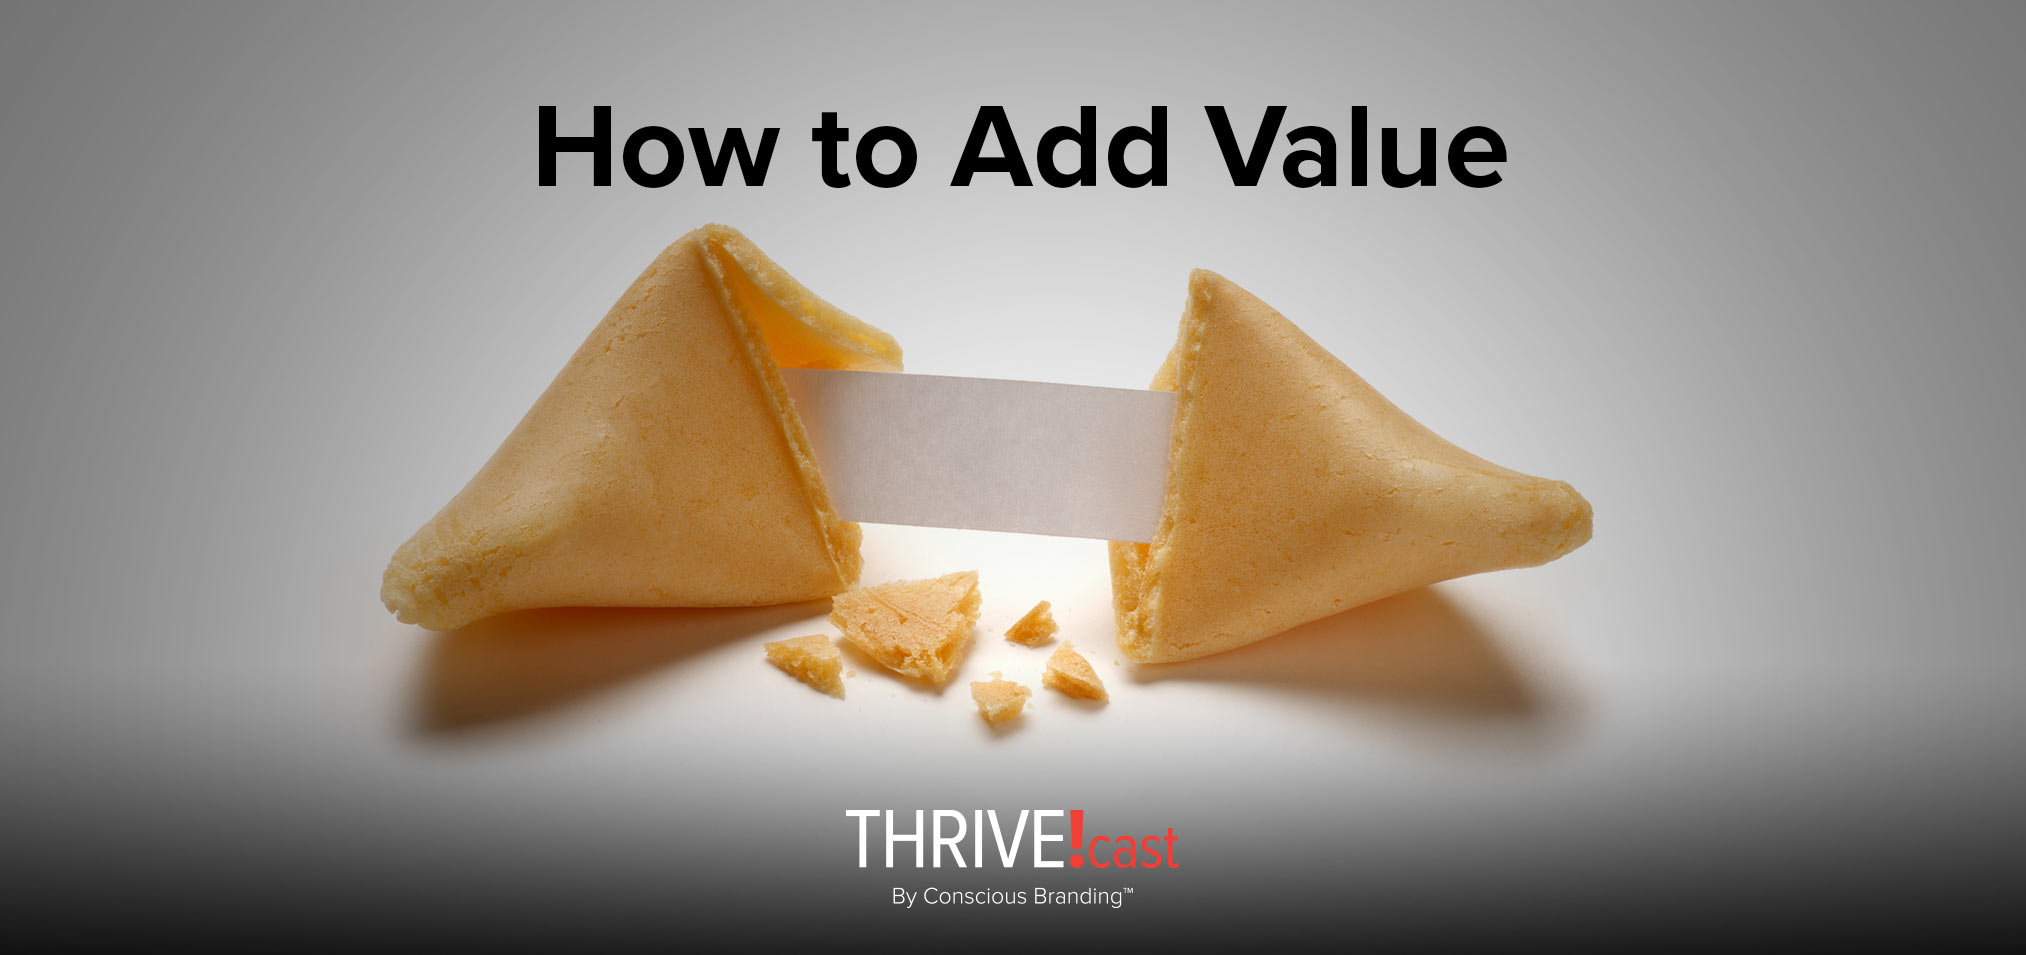 Thrivecast - How to Add Value